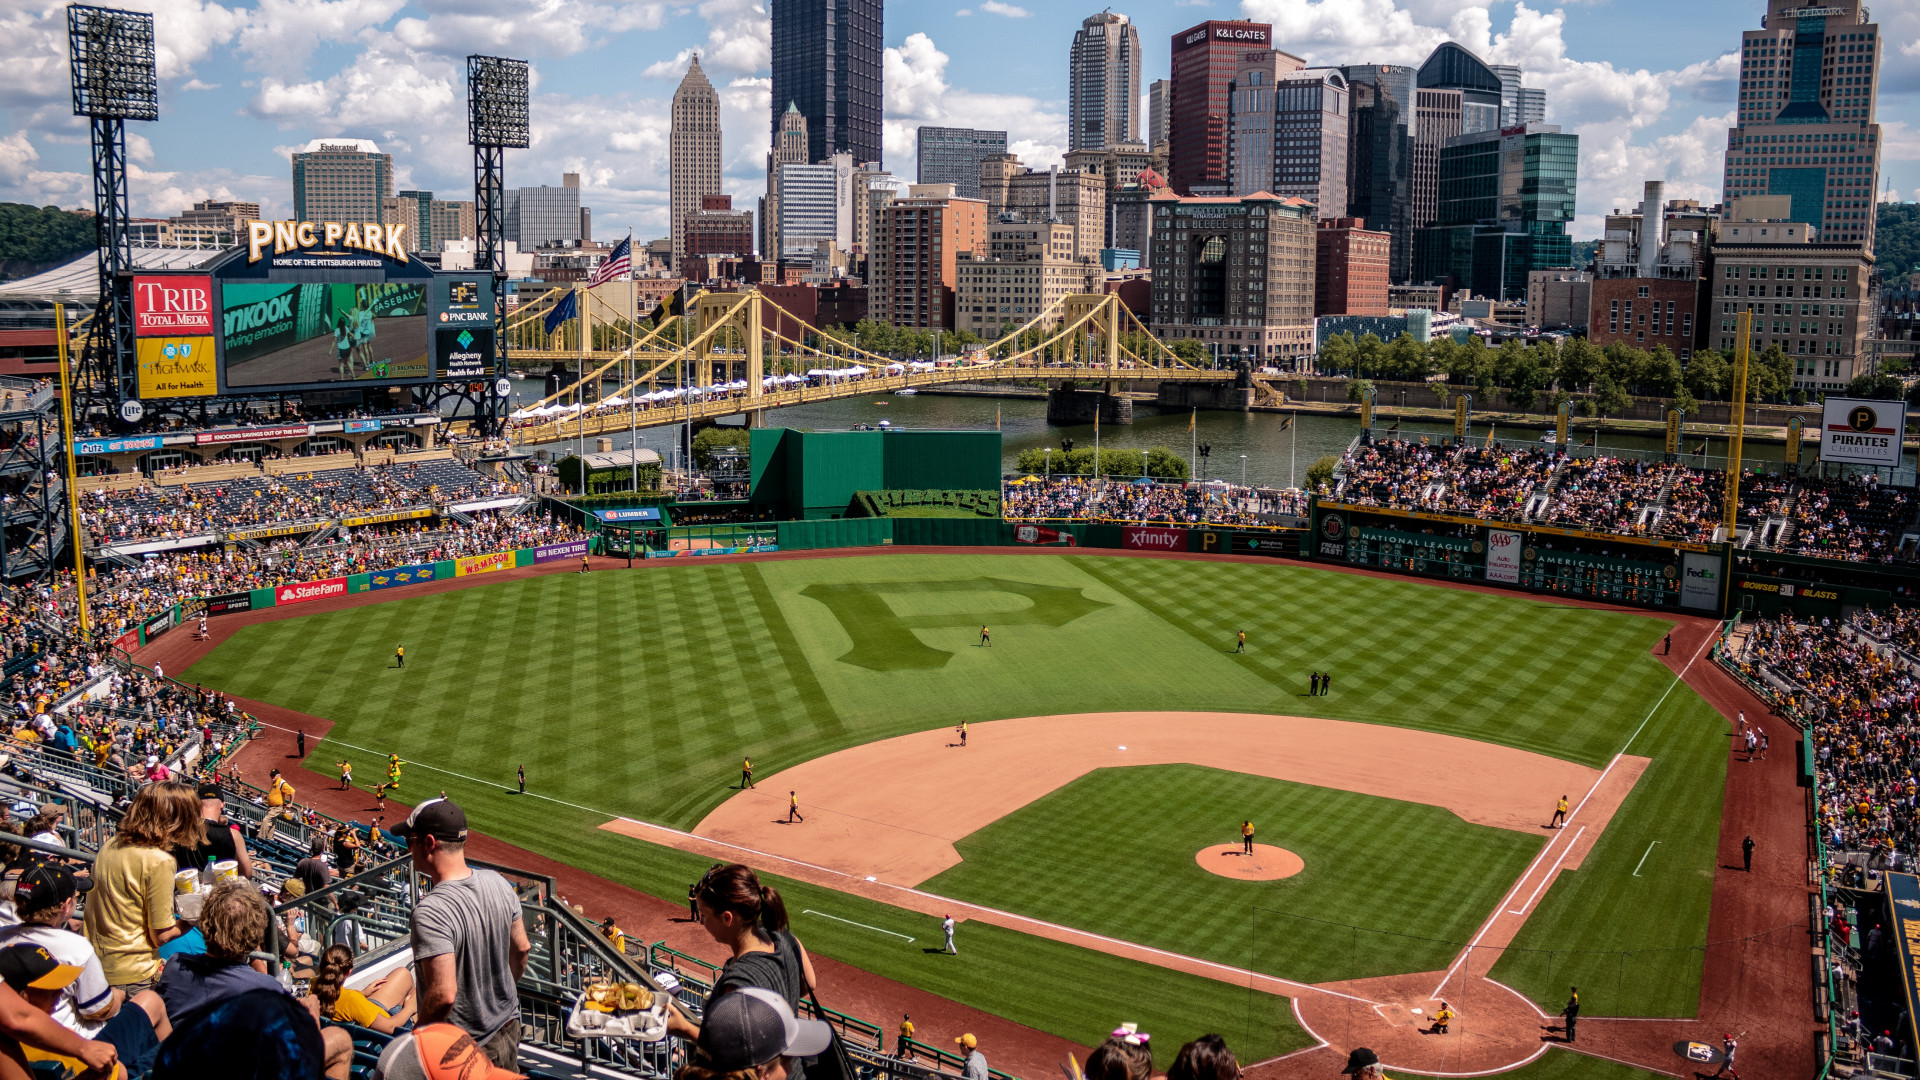 View from the PNC Park in Pittsburgh on a matchday